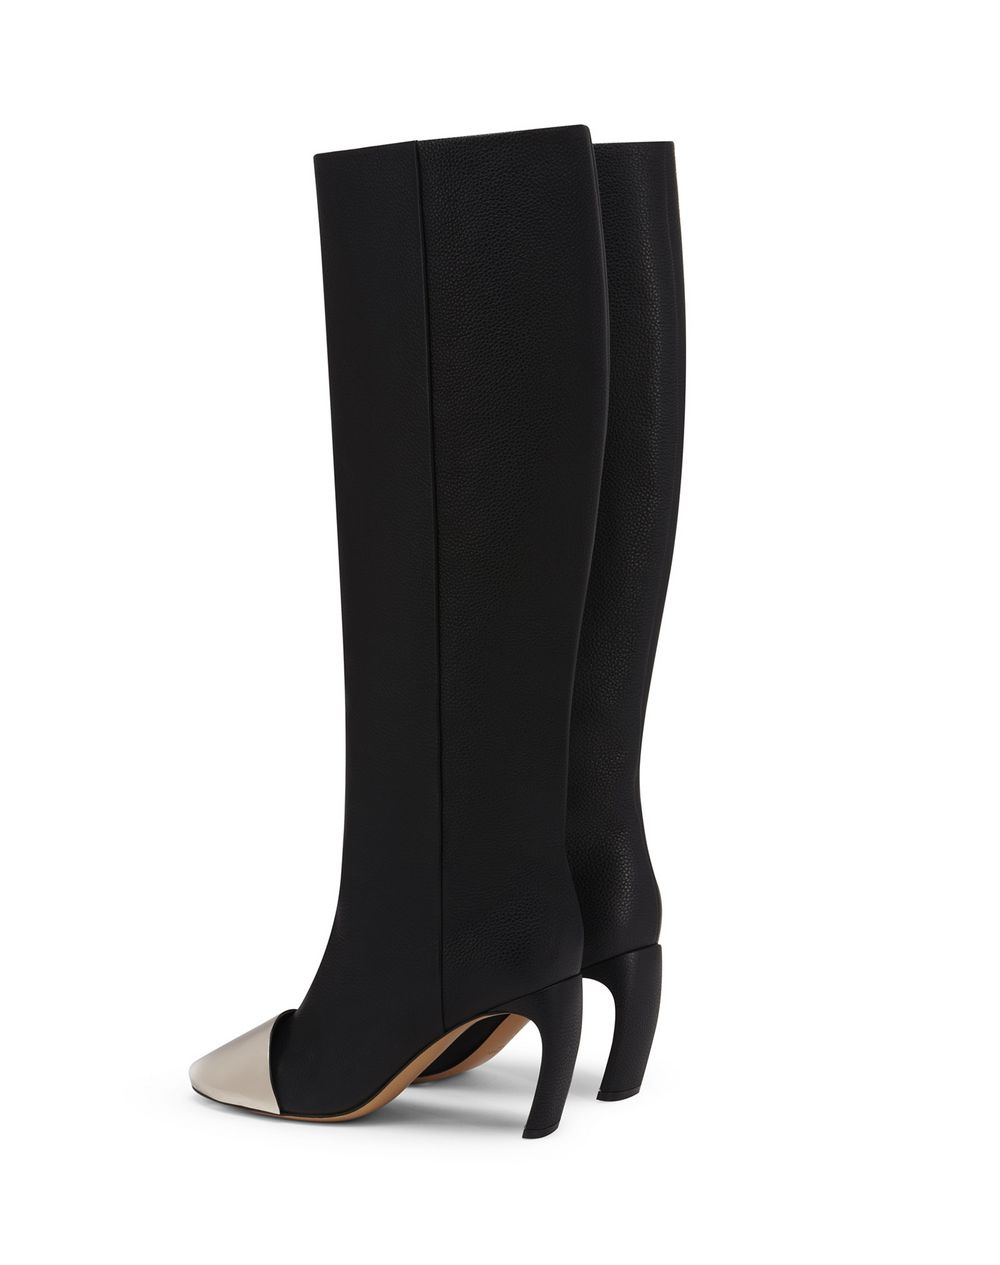 J BOOTS IN GRAINED LEATHER WITH METALLIC TOE - Lanvin